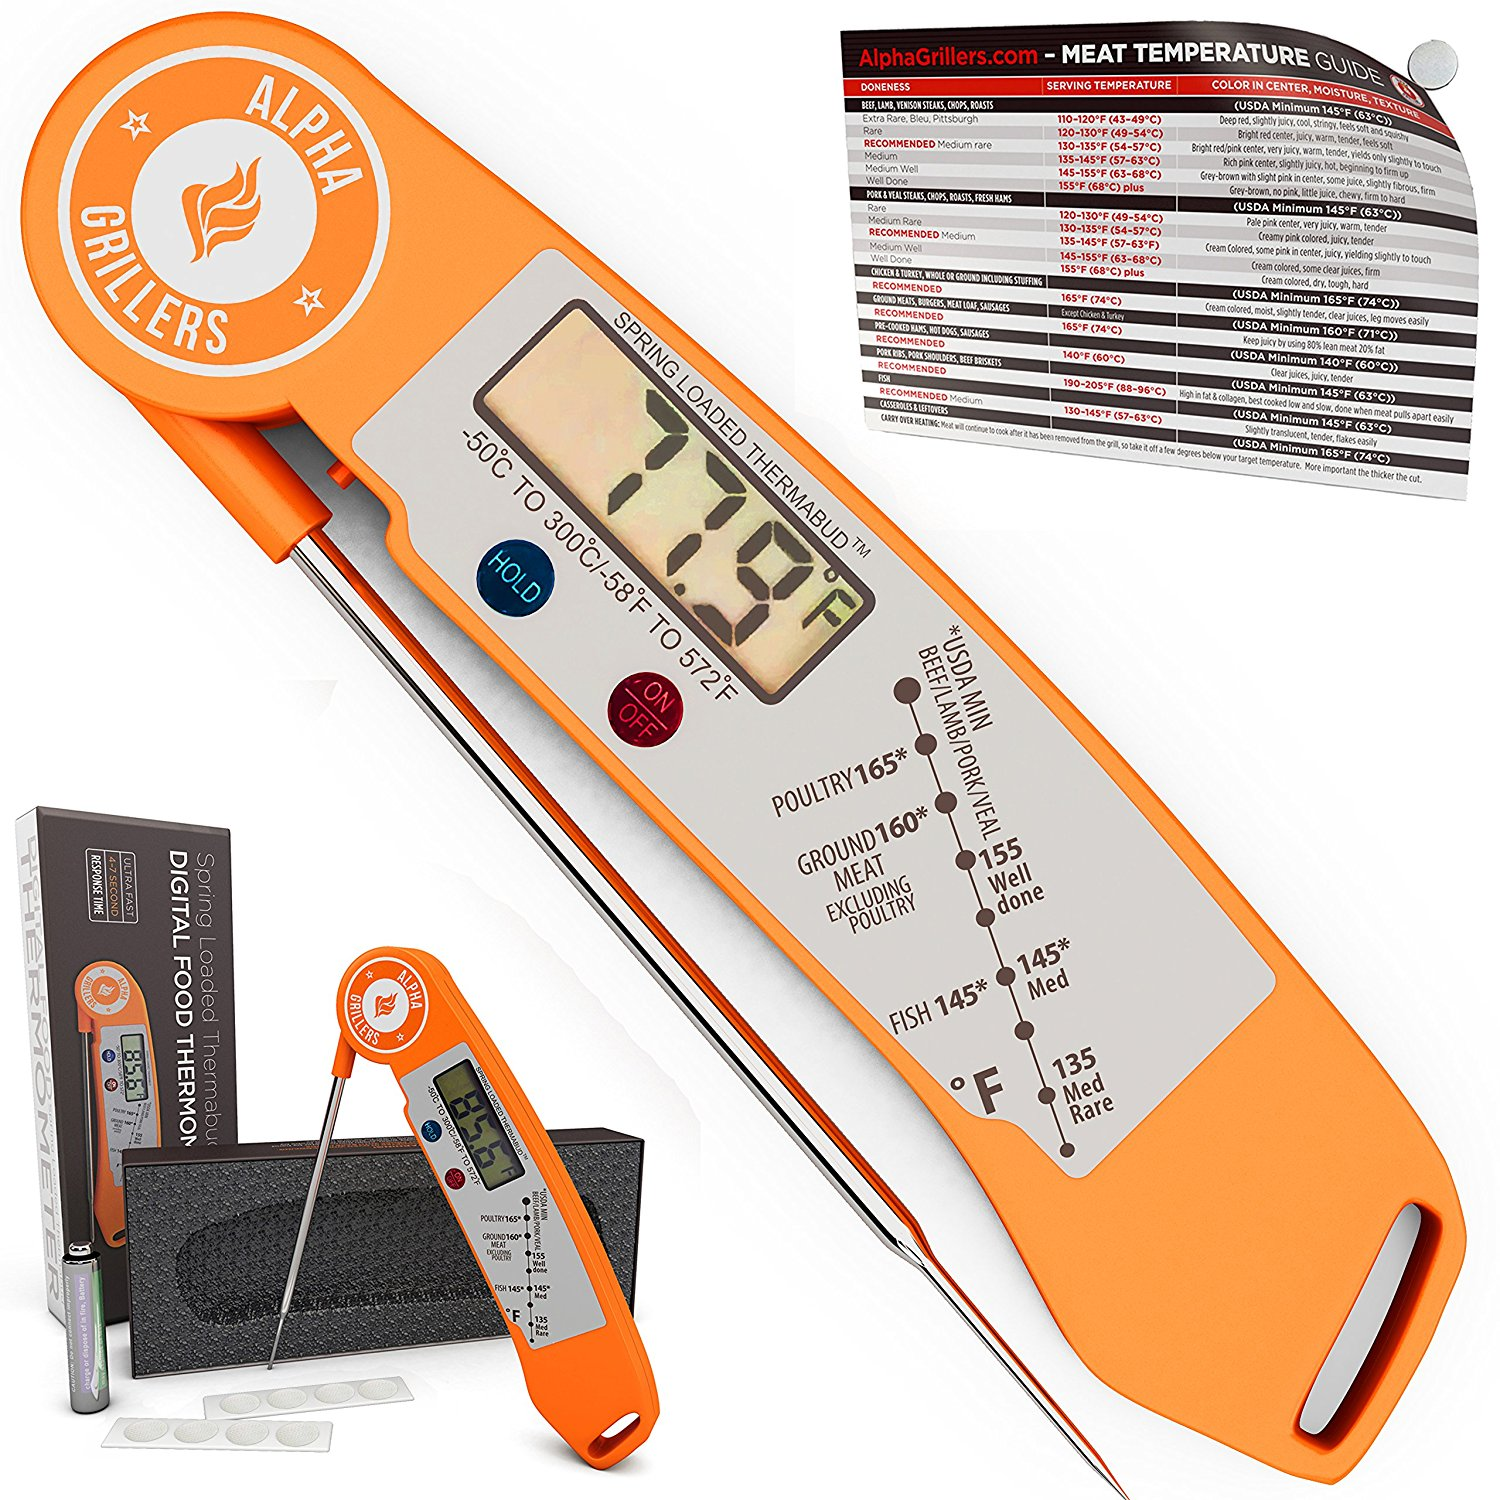 Heat clipart meat thermometer #3